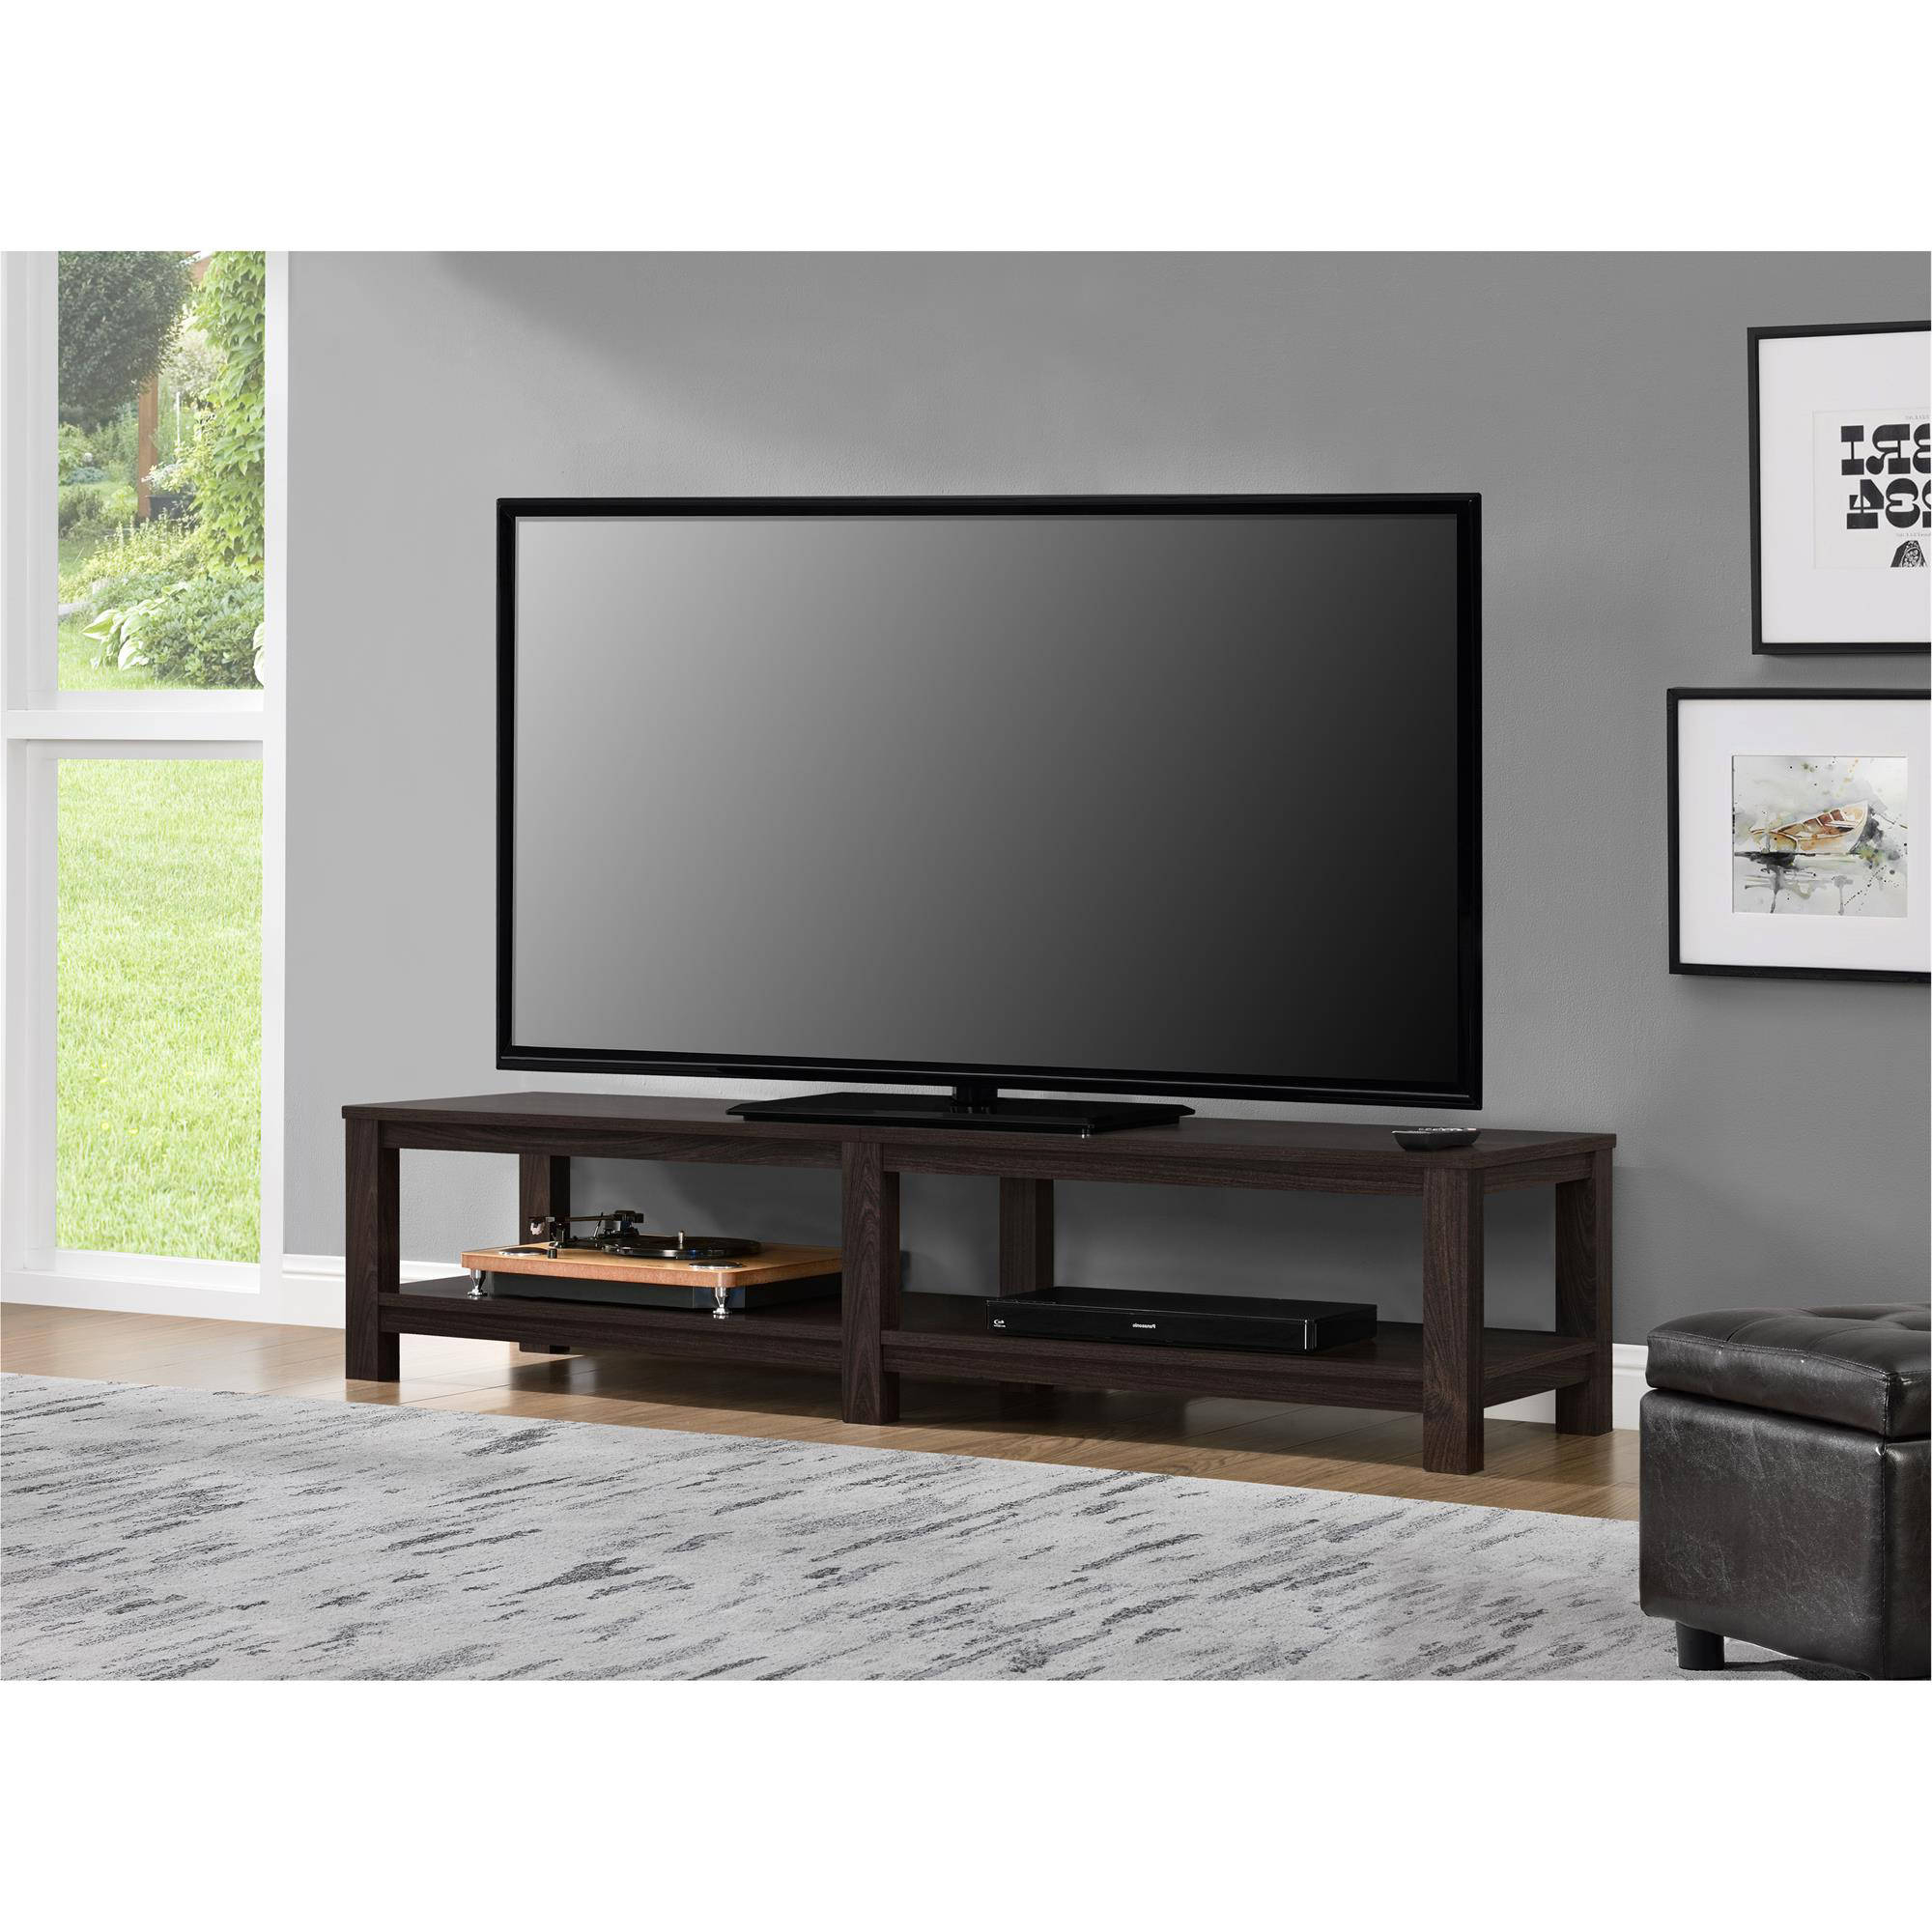 """Mainstays Parsons Tv Stand For Tvs Up To 65"""", Multiple Colors Regarding Century Blue 60 Inch Tv Stands (View 11 of 20)"""